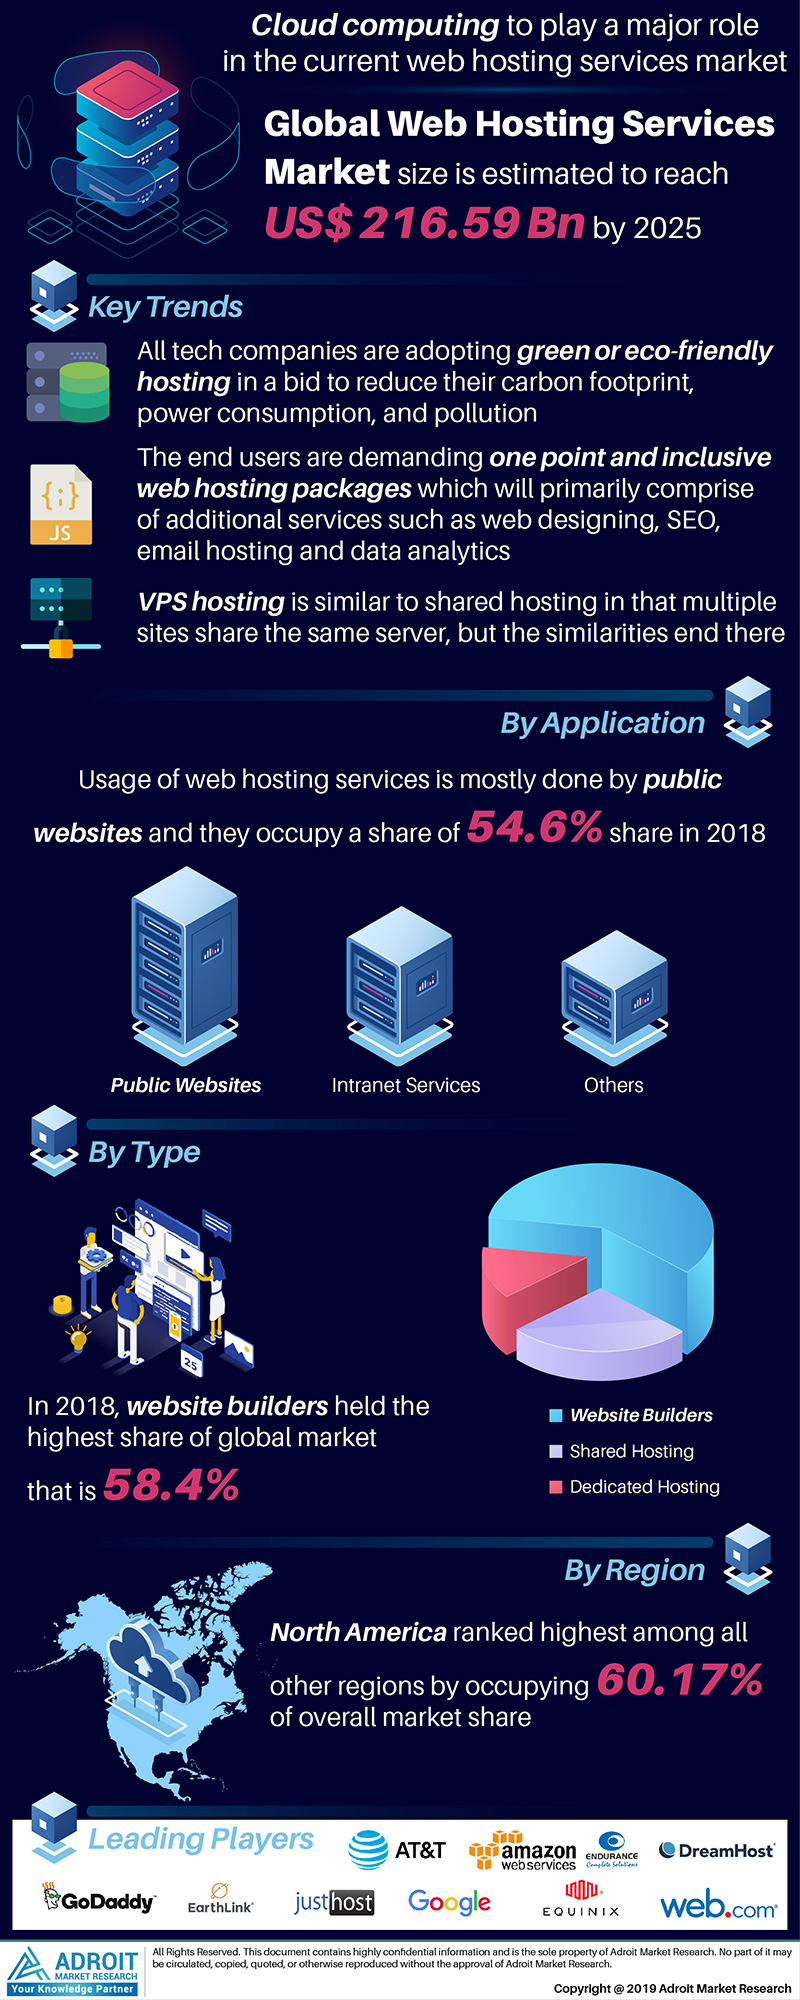 Global Web Hosting Services Market Size 2017 By Product, Application, Region and Forecast 2018 to 2025